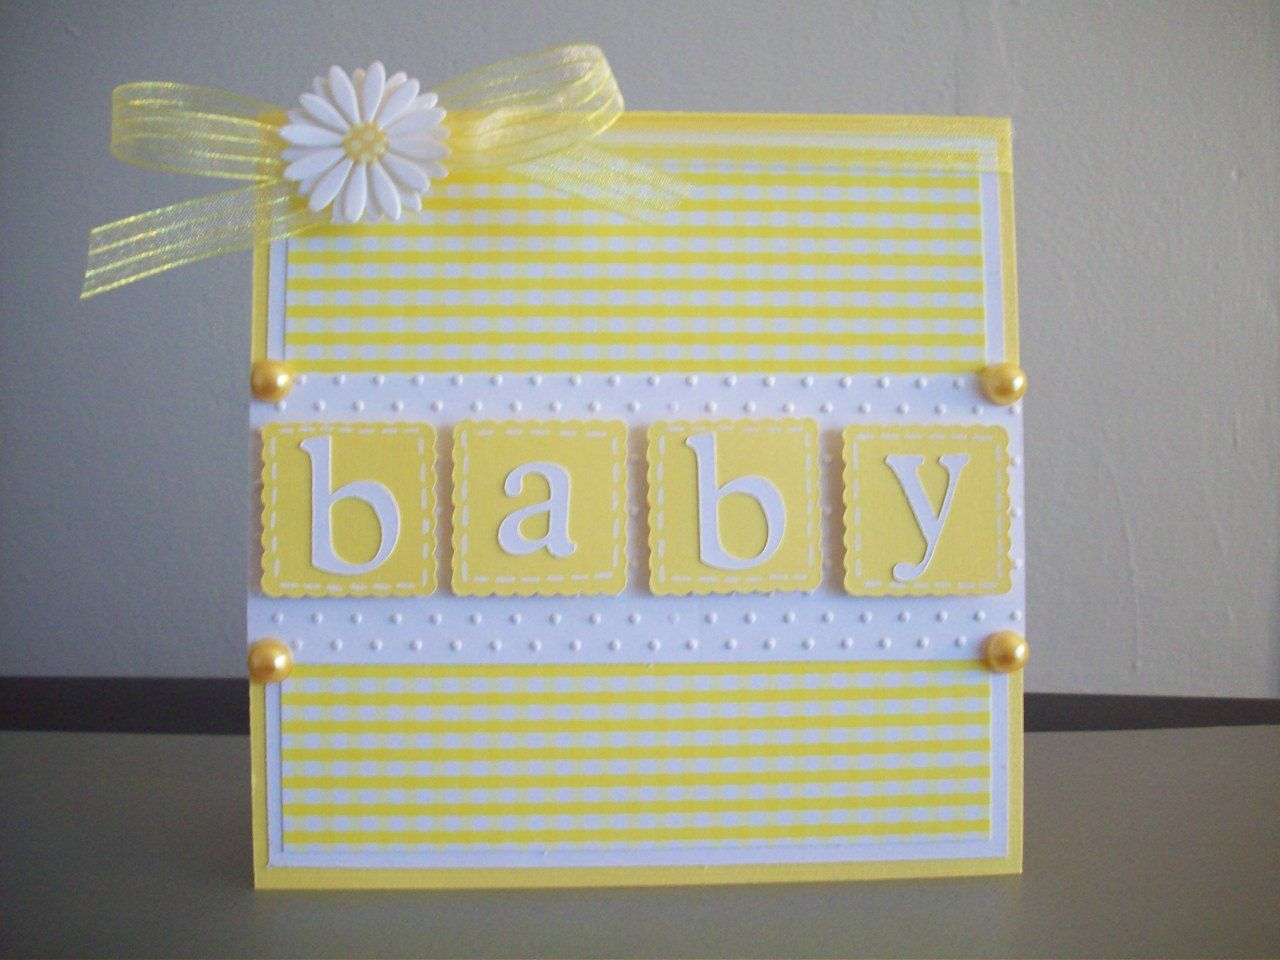 Plantin Schoolbook- Loved scalloped squares and polka dot white paper, pearls